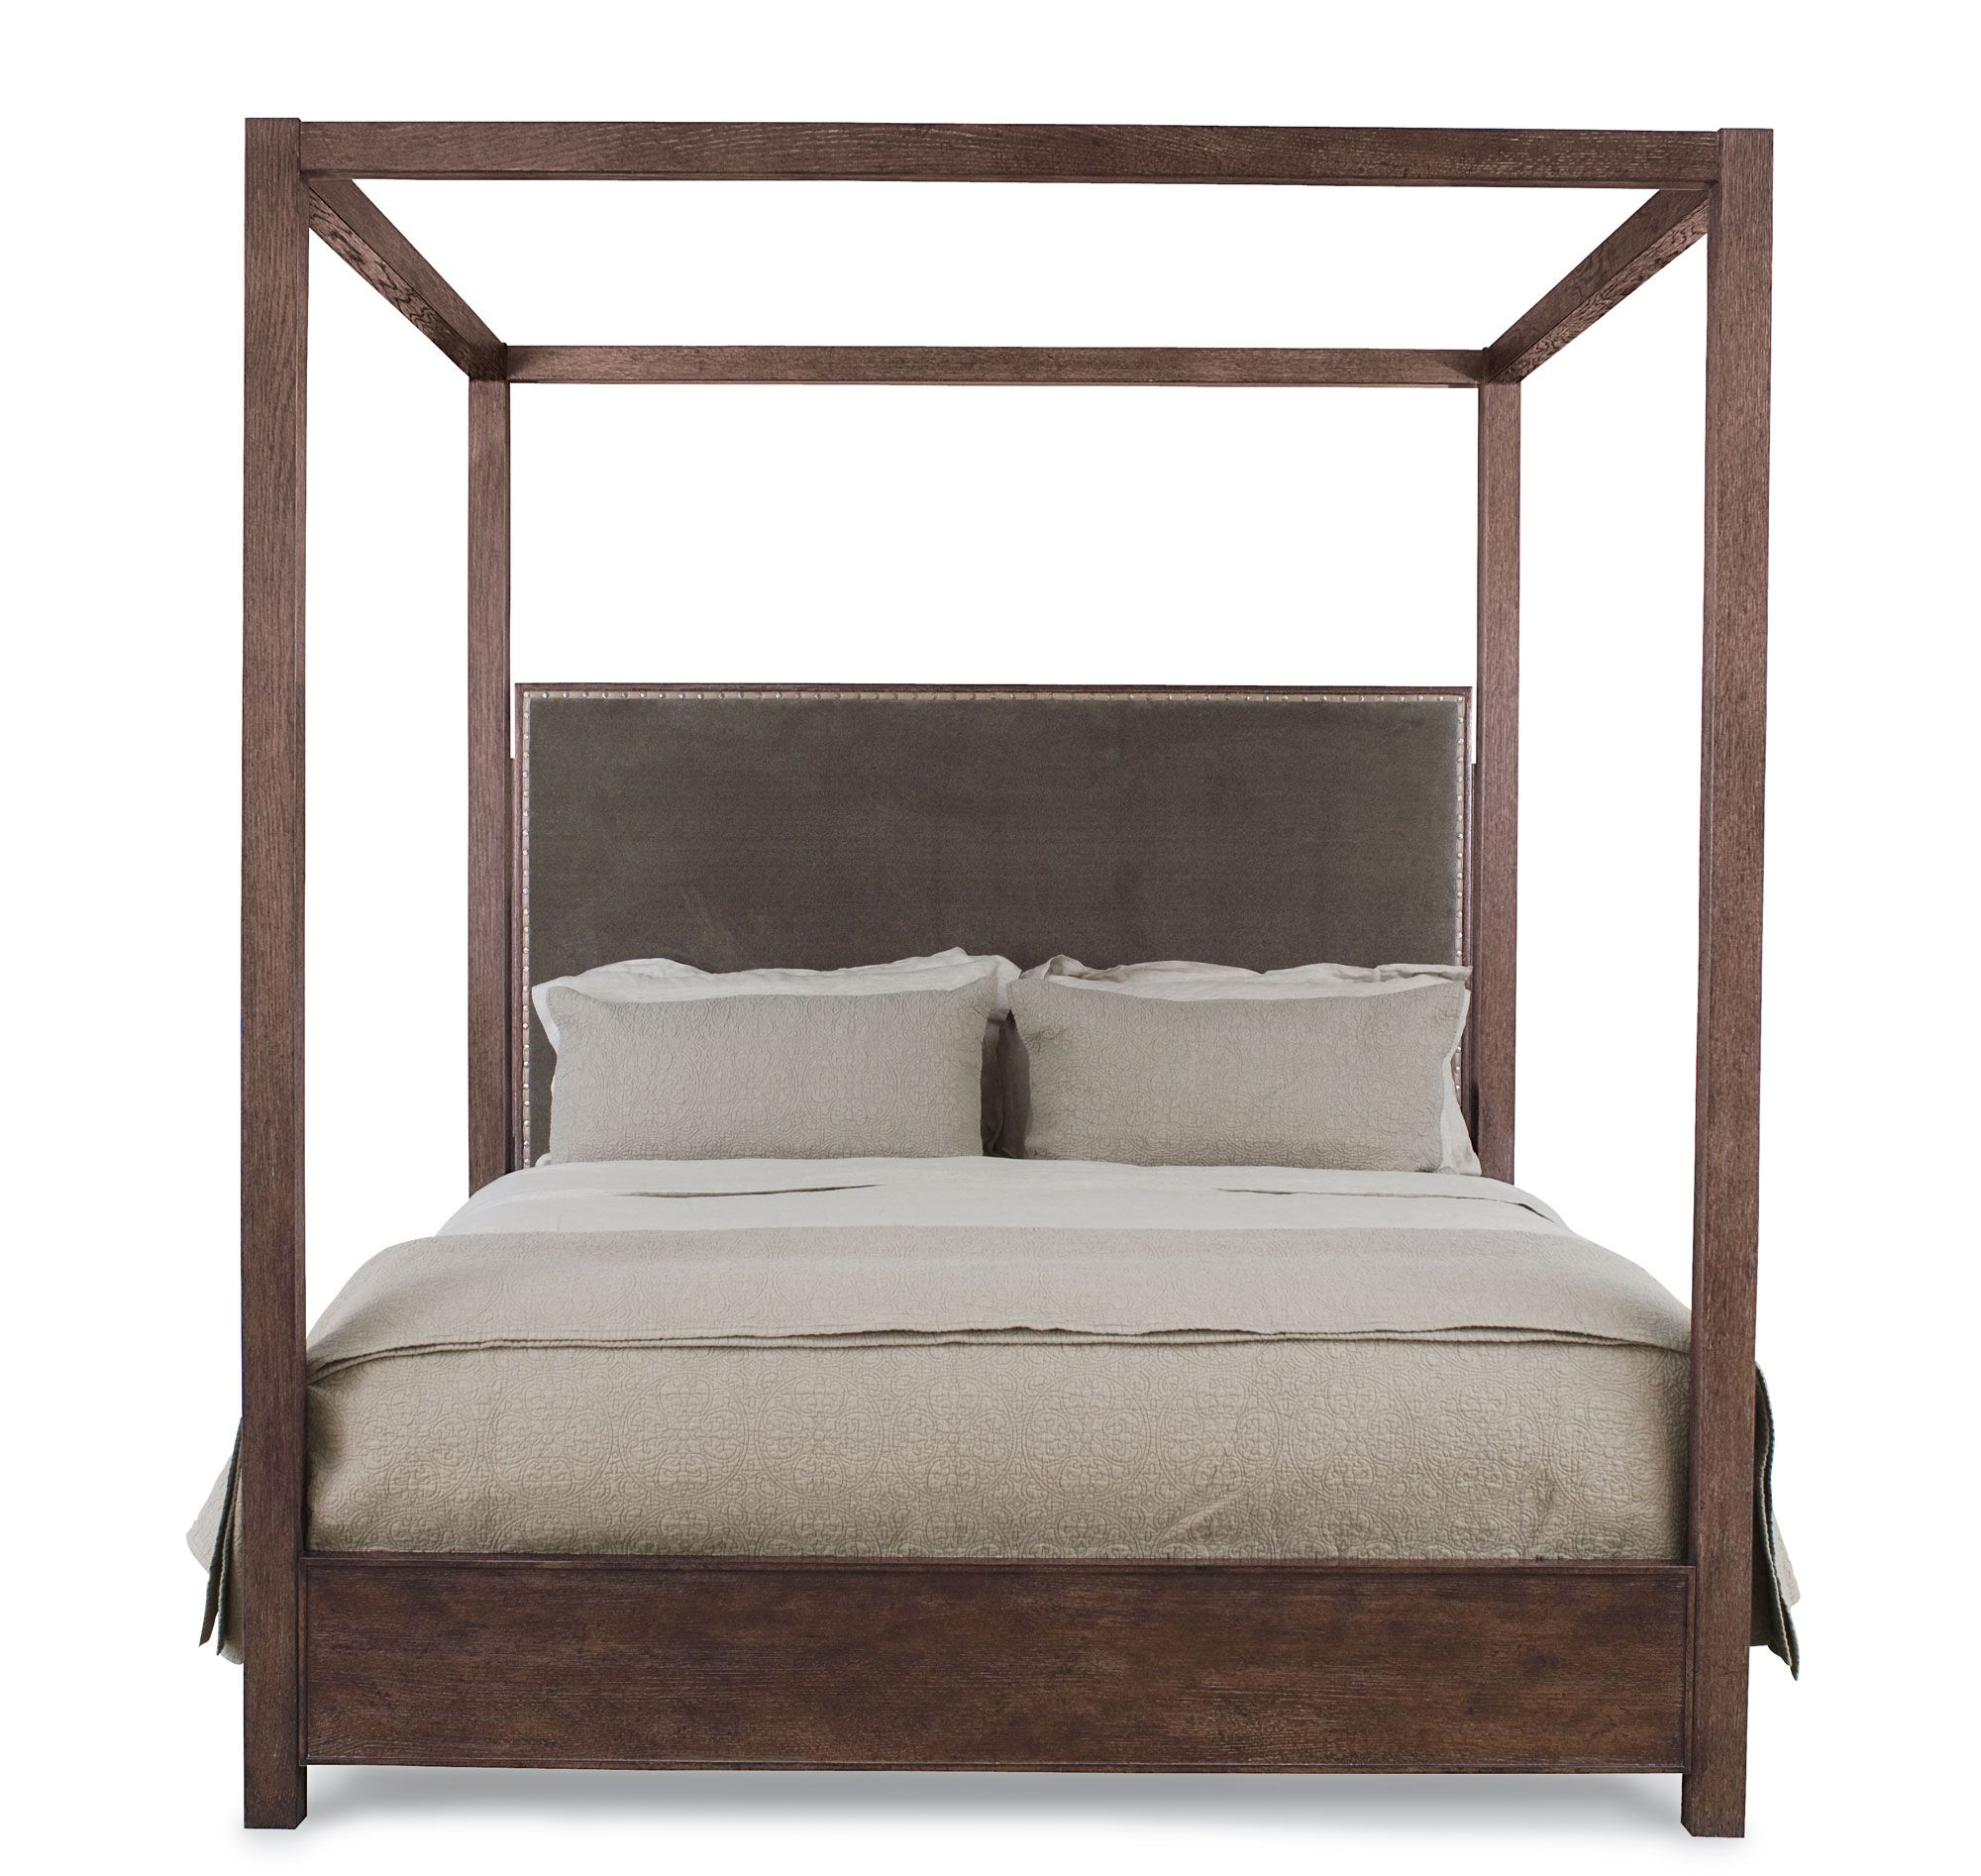 Four Poster Bed With Upholstered Headboard And Nailhead Trim From